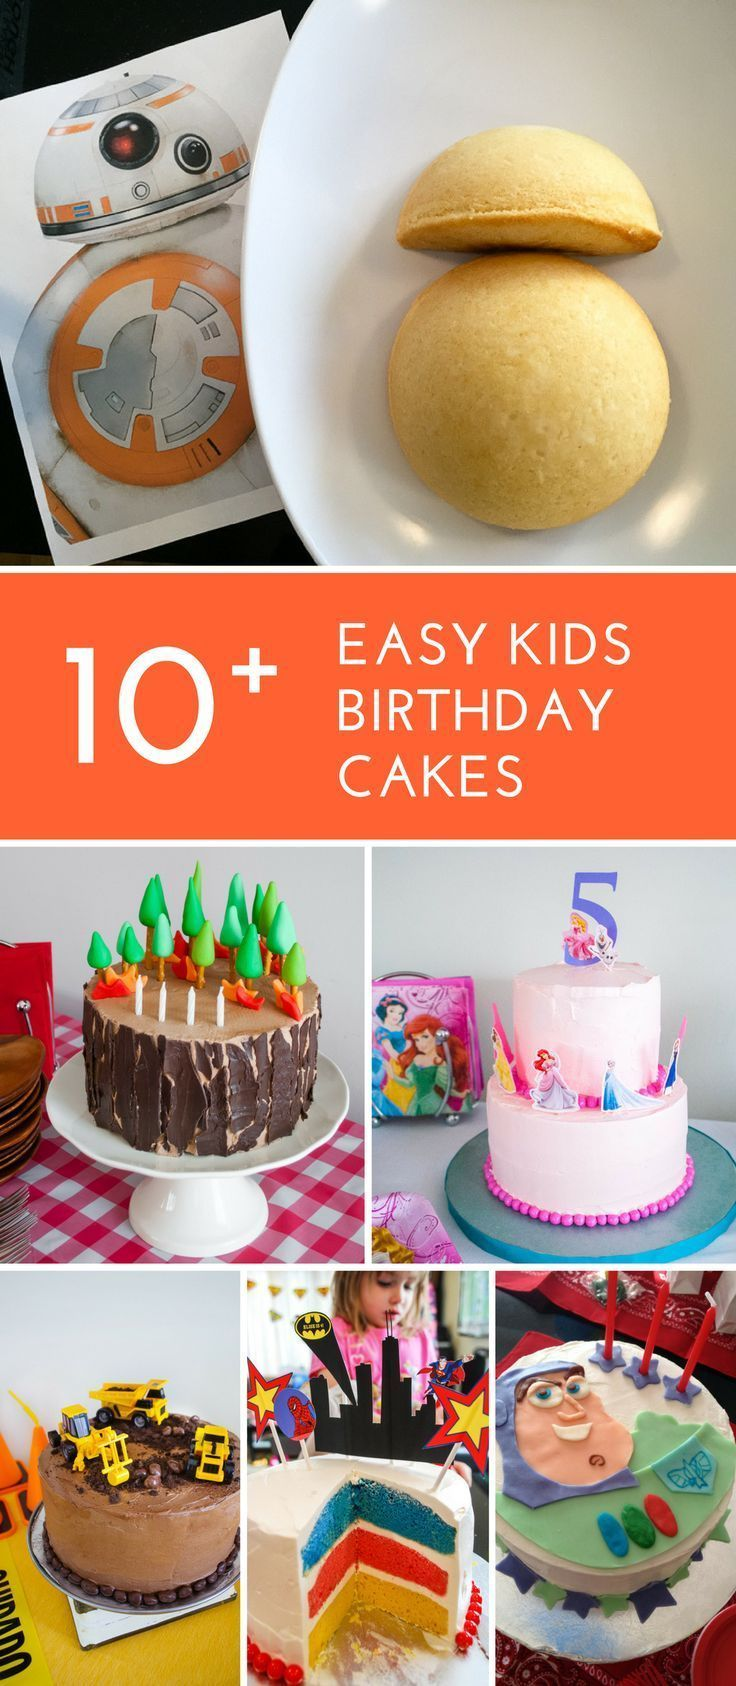 10+ easy birthday cakes for kids! Easy kids cakes for beginner cake decorators. Includes Toy Story cakes, LEGO birthday cakes, Super Heroes cakes, Princess birthday cakes, Airplane birthday cakes, Star Wars cakes, and more! | Birthday cakes for boys | Birthday cakes for girls | #birthdaycakes #kids #cakes #birthday